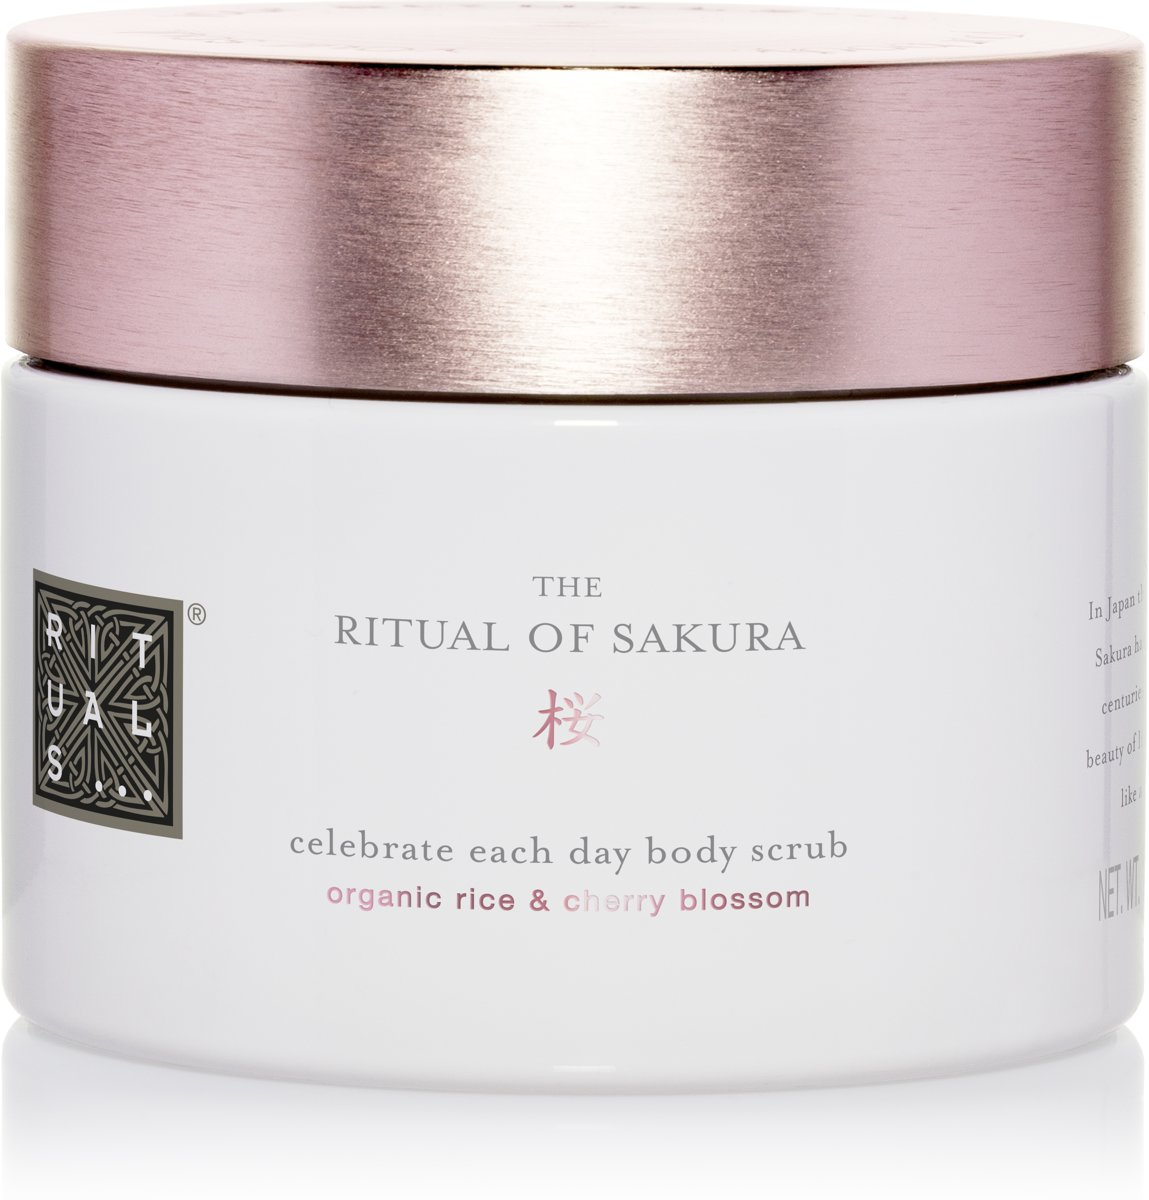 RITUALS The Ritual of Sakura Lichaamsscrub - 375g